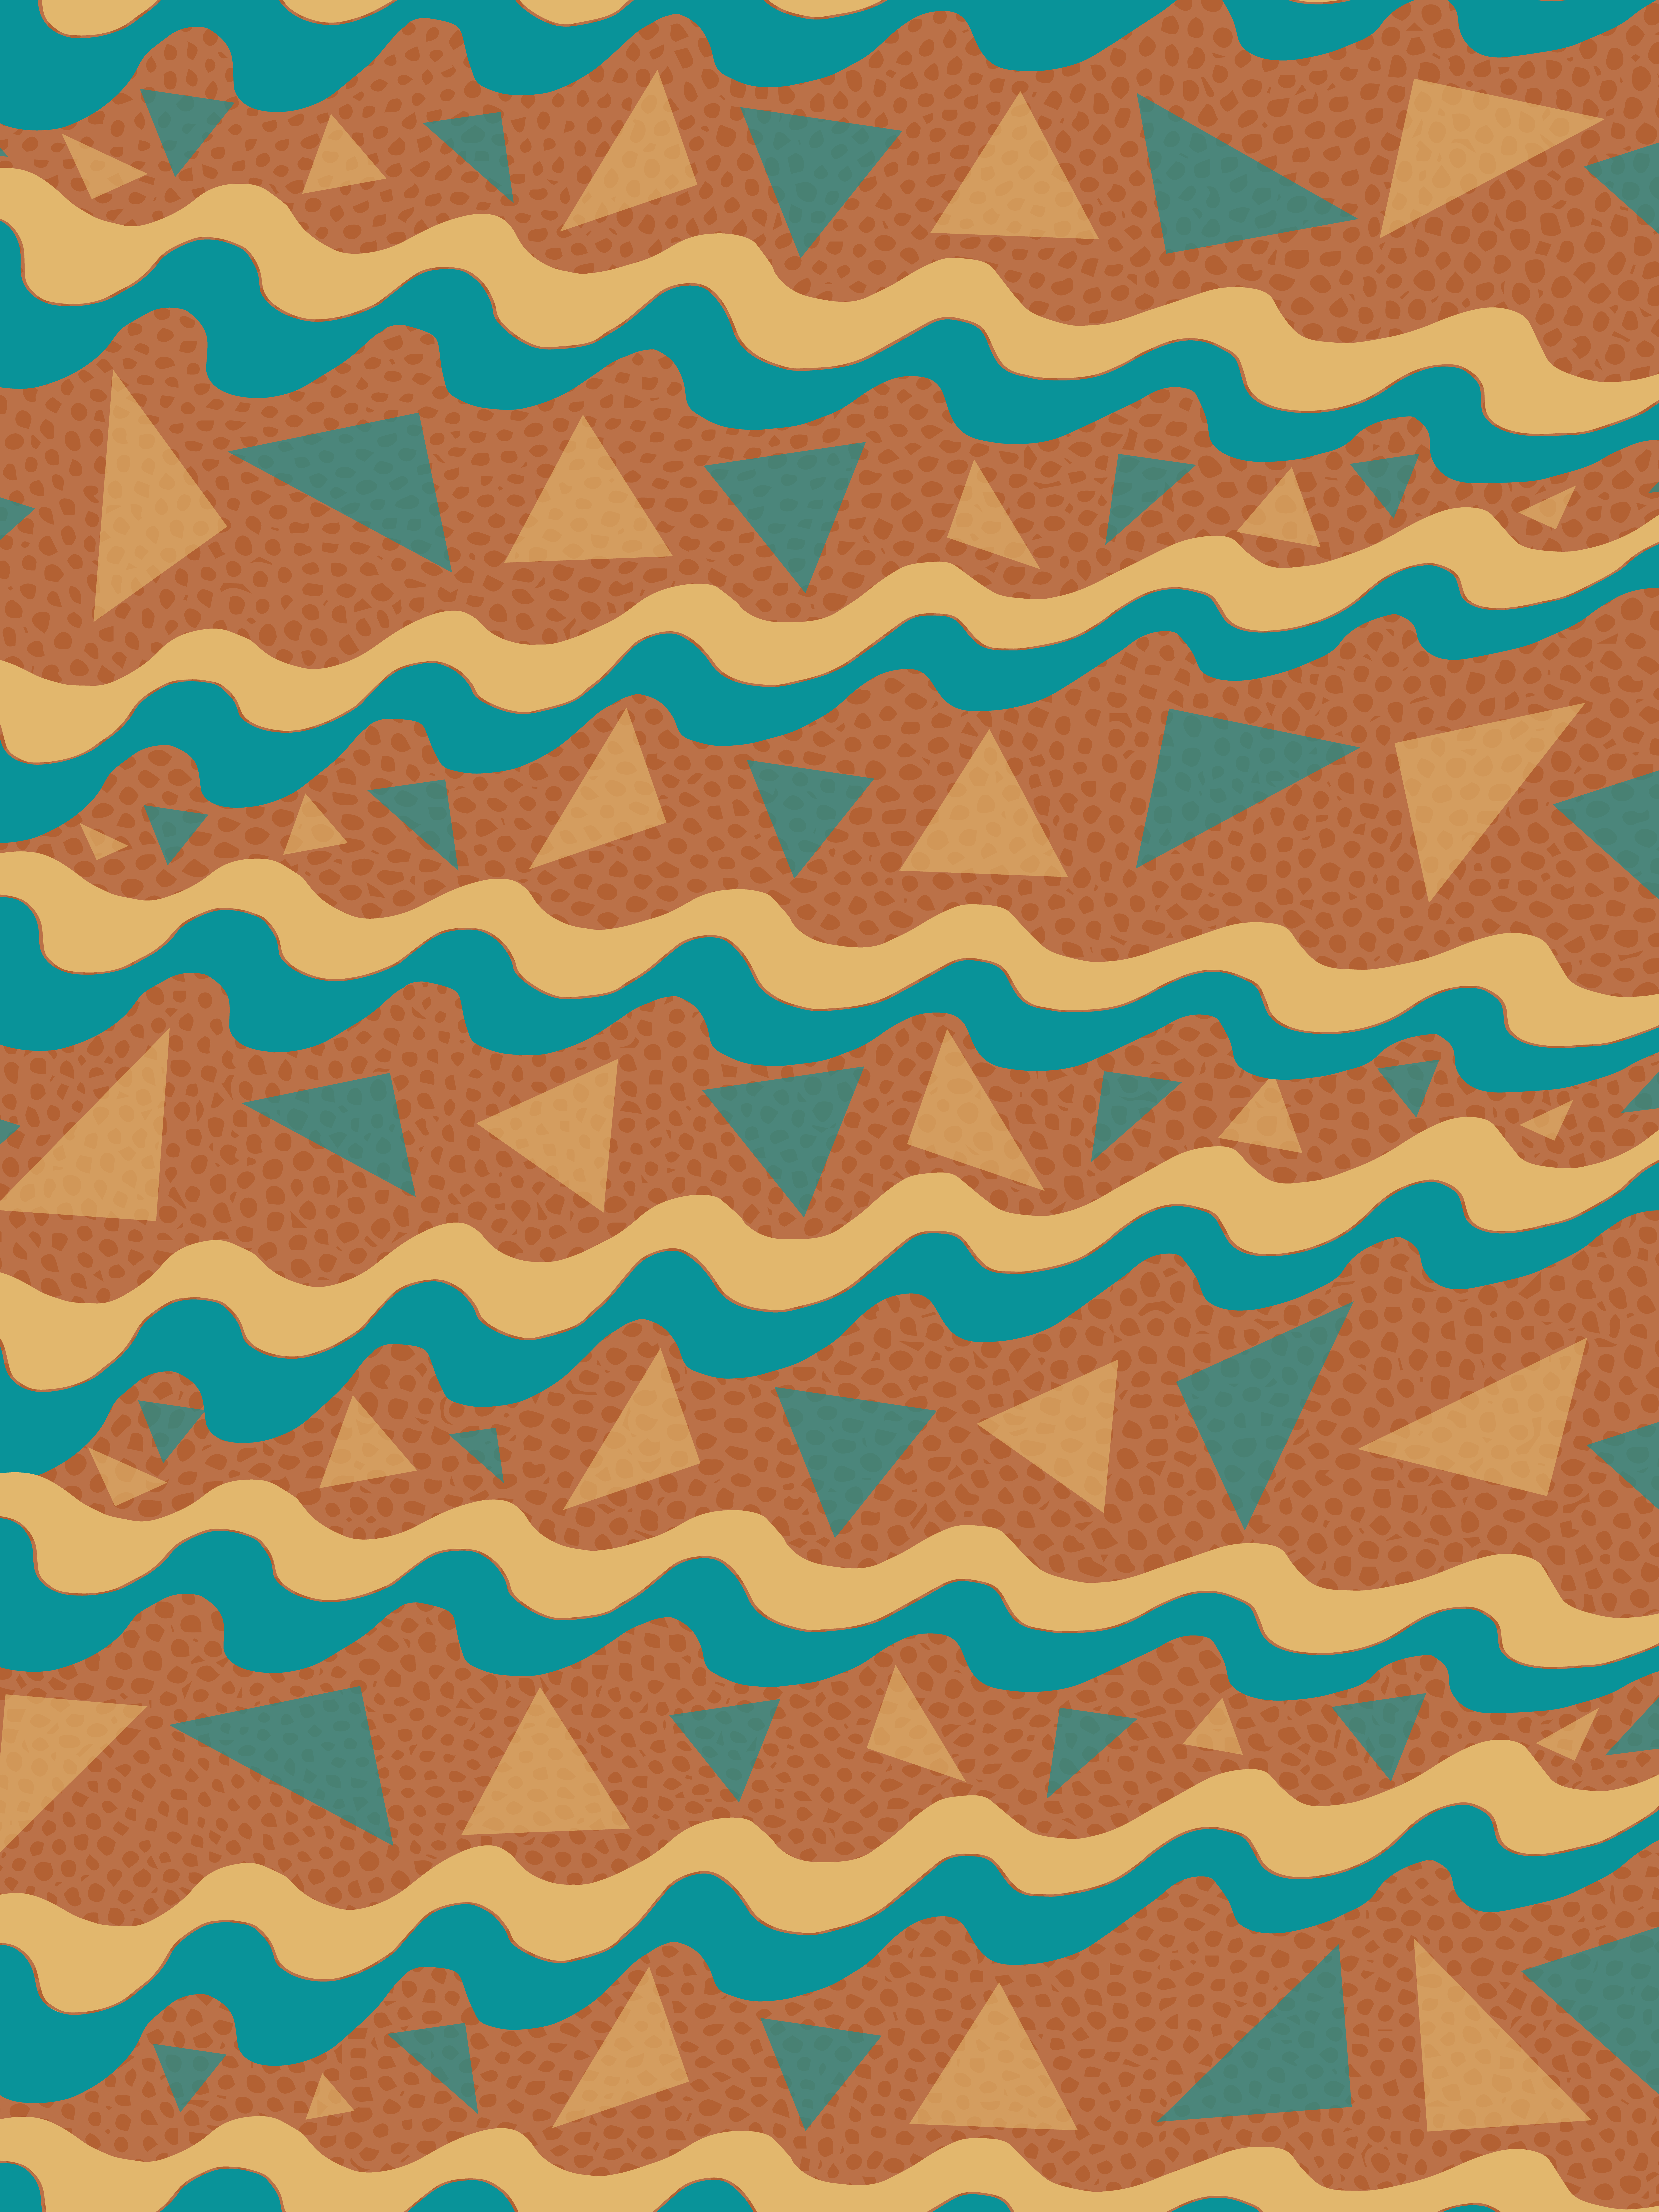 Waves & Triangles Pattern